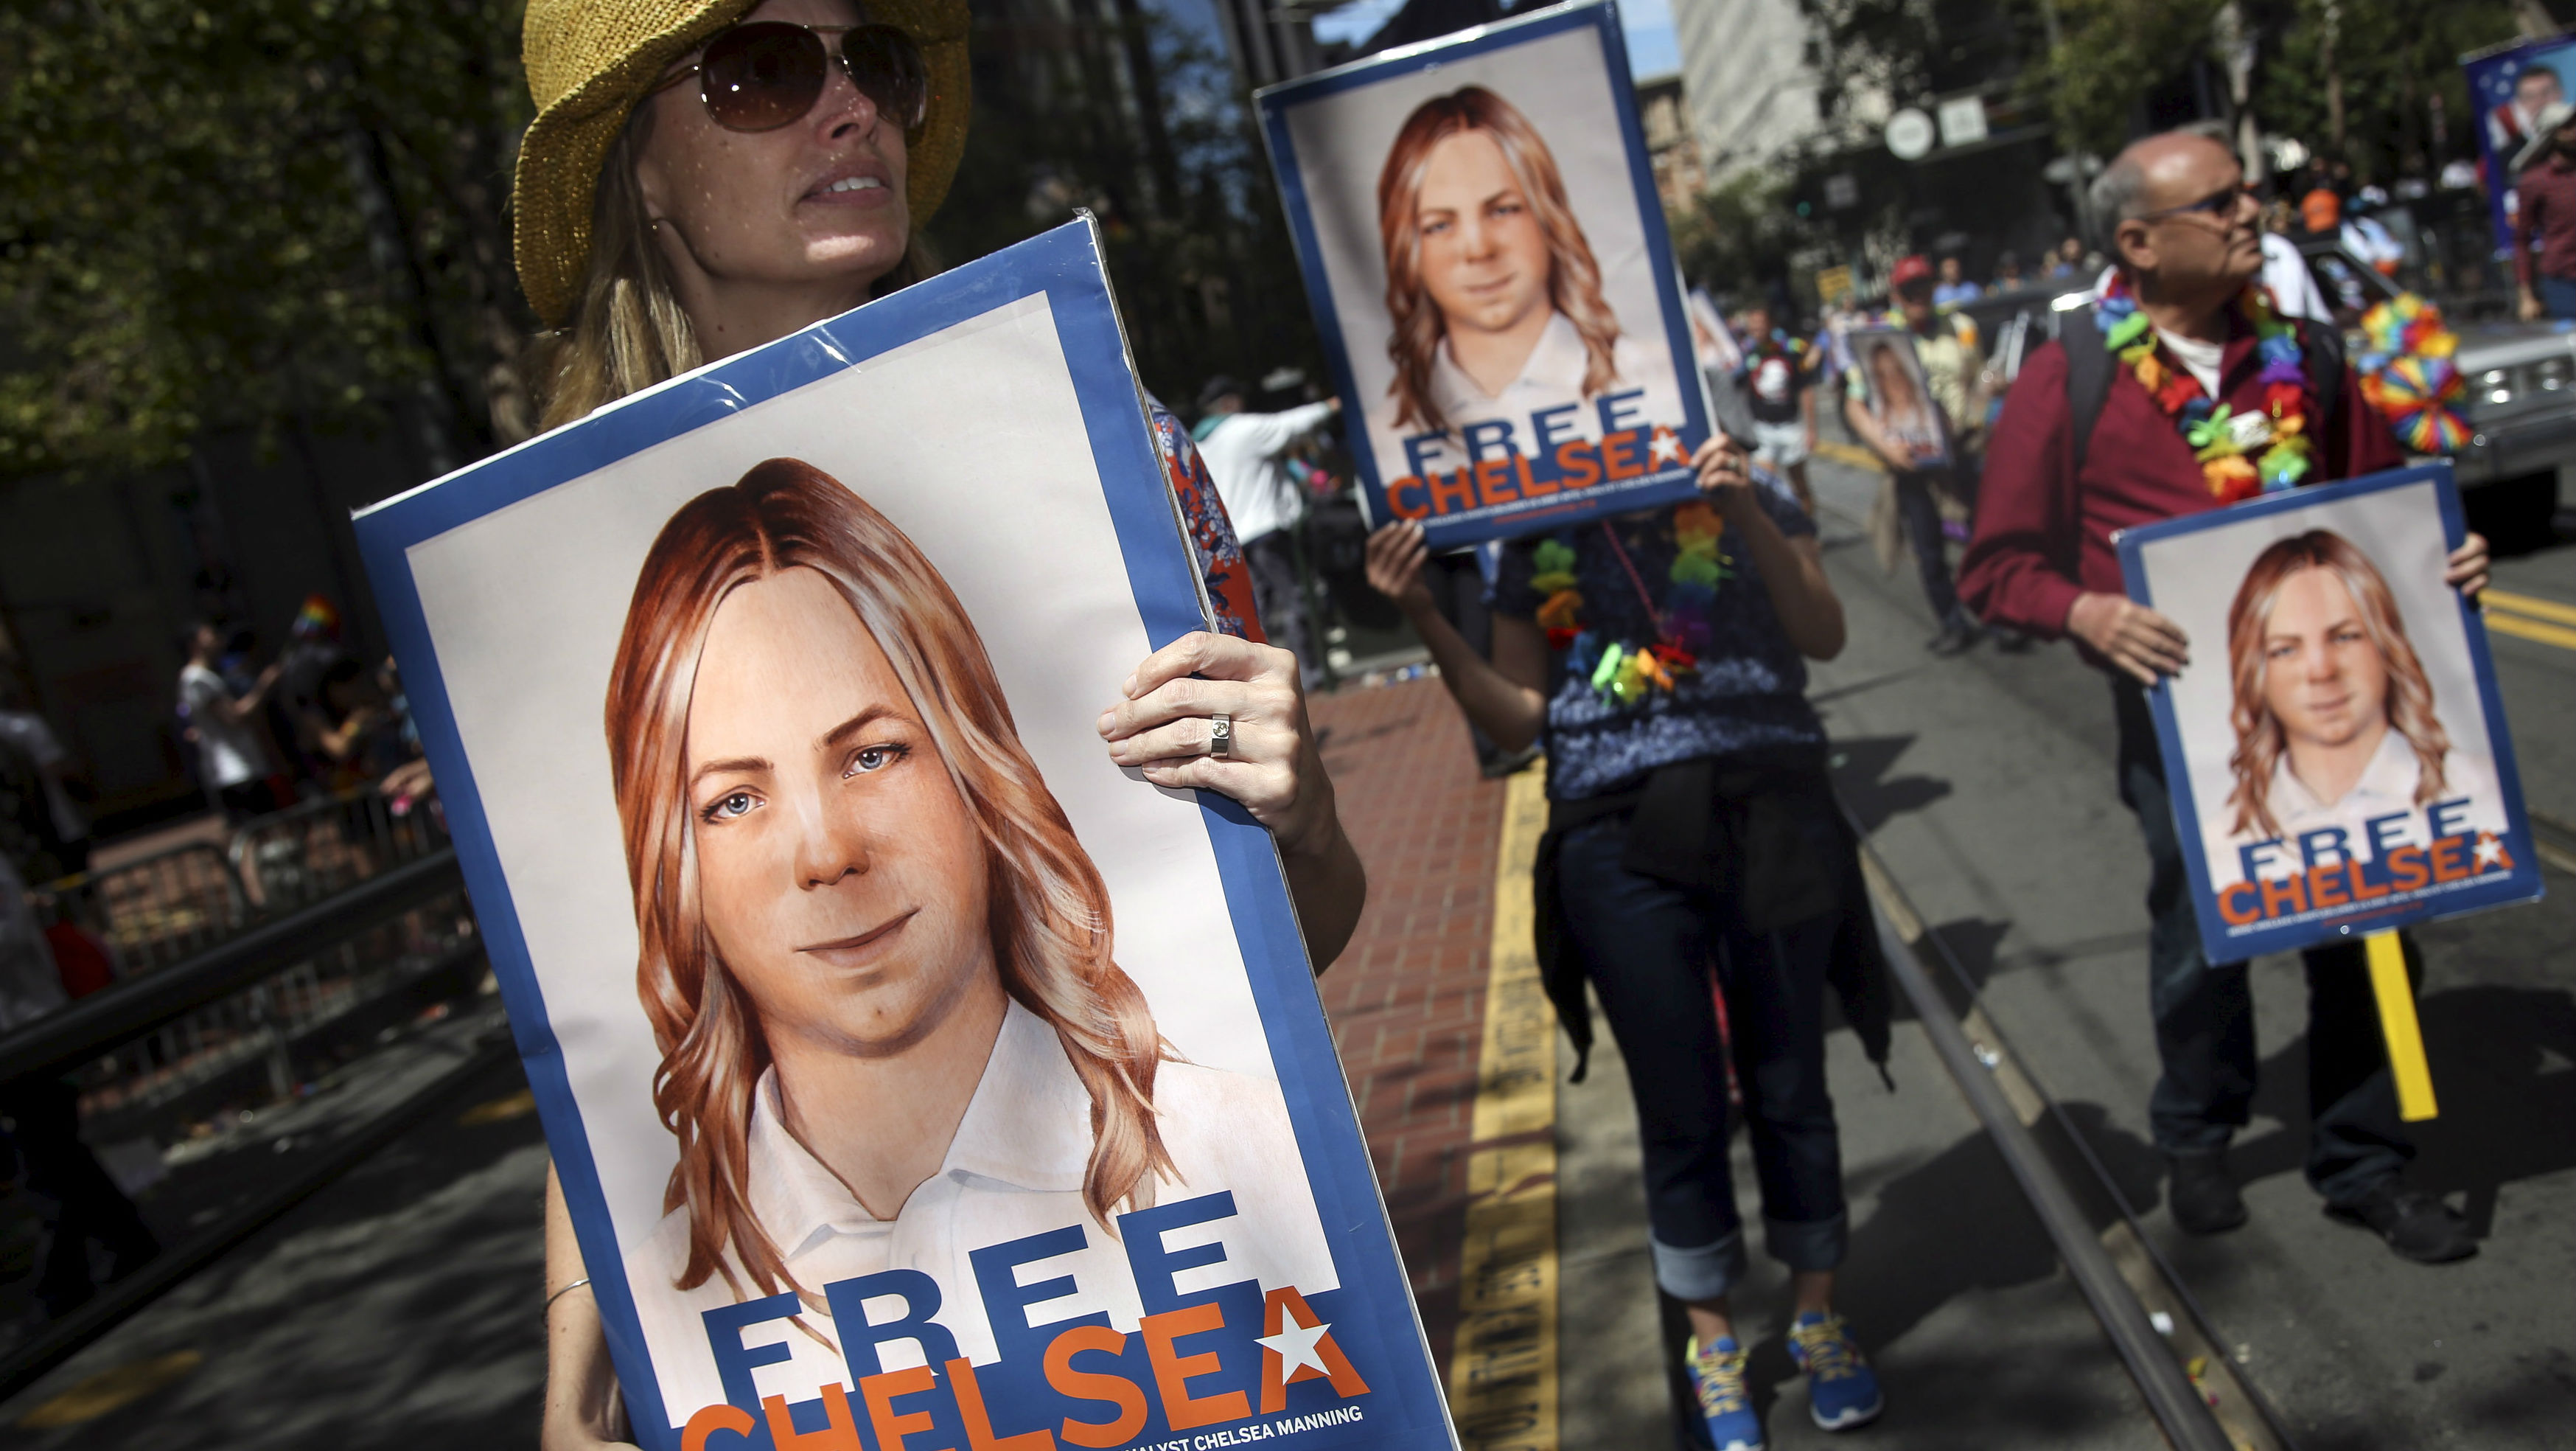 People hold signs calling for the release of imprisoned wikileaks whistleblower Chelsea Manning while marching in a gay pride parade in San Francisco, California June 28, 2015. REUTERS/Elijah Nouvelage